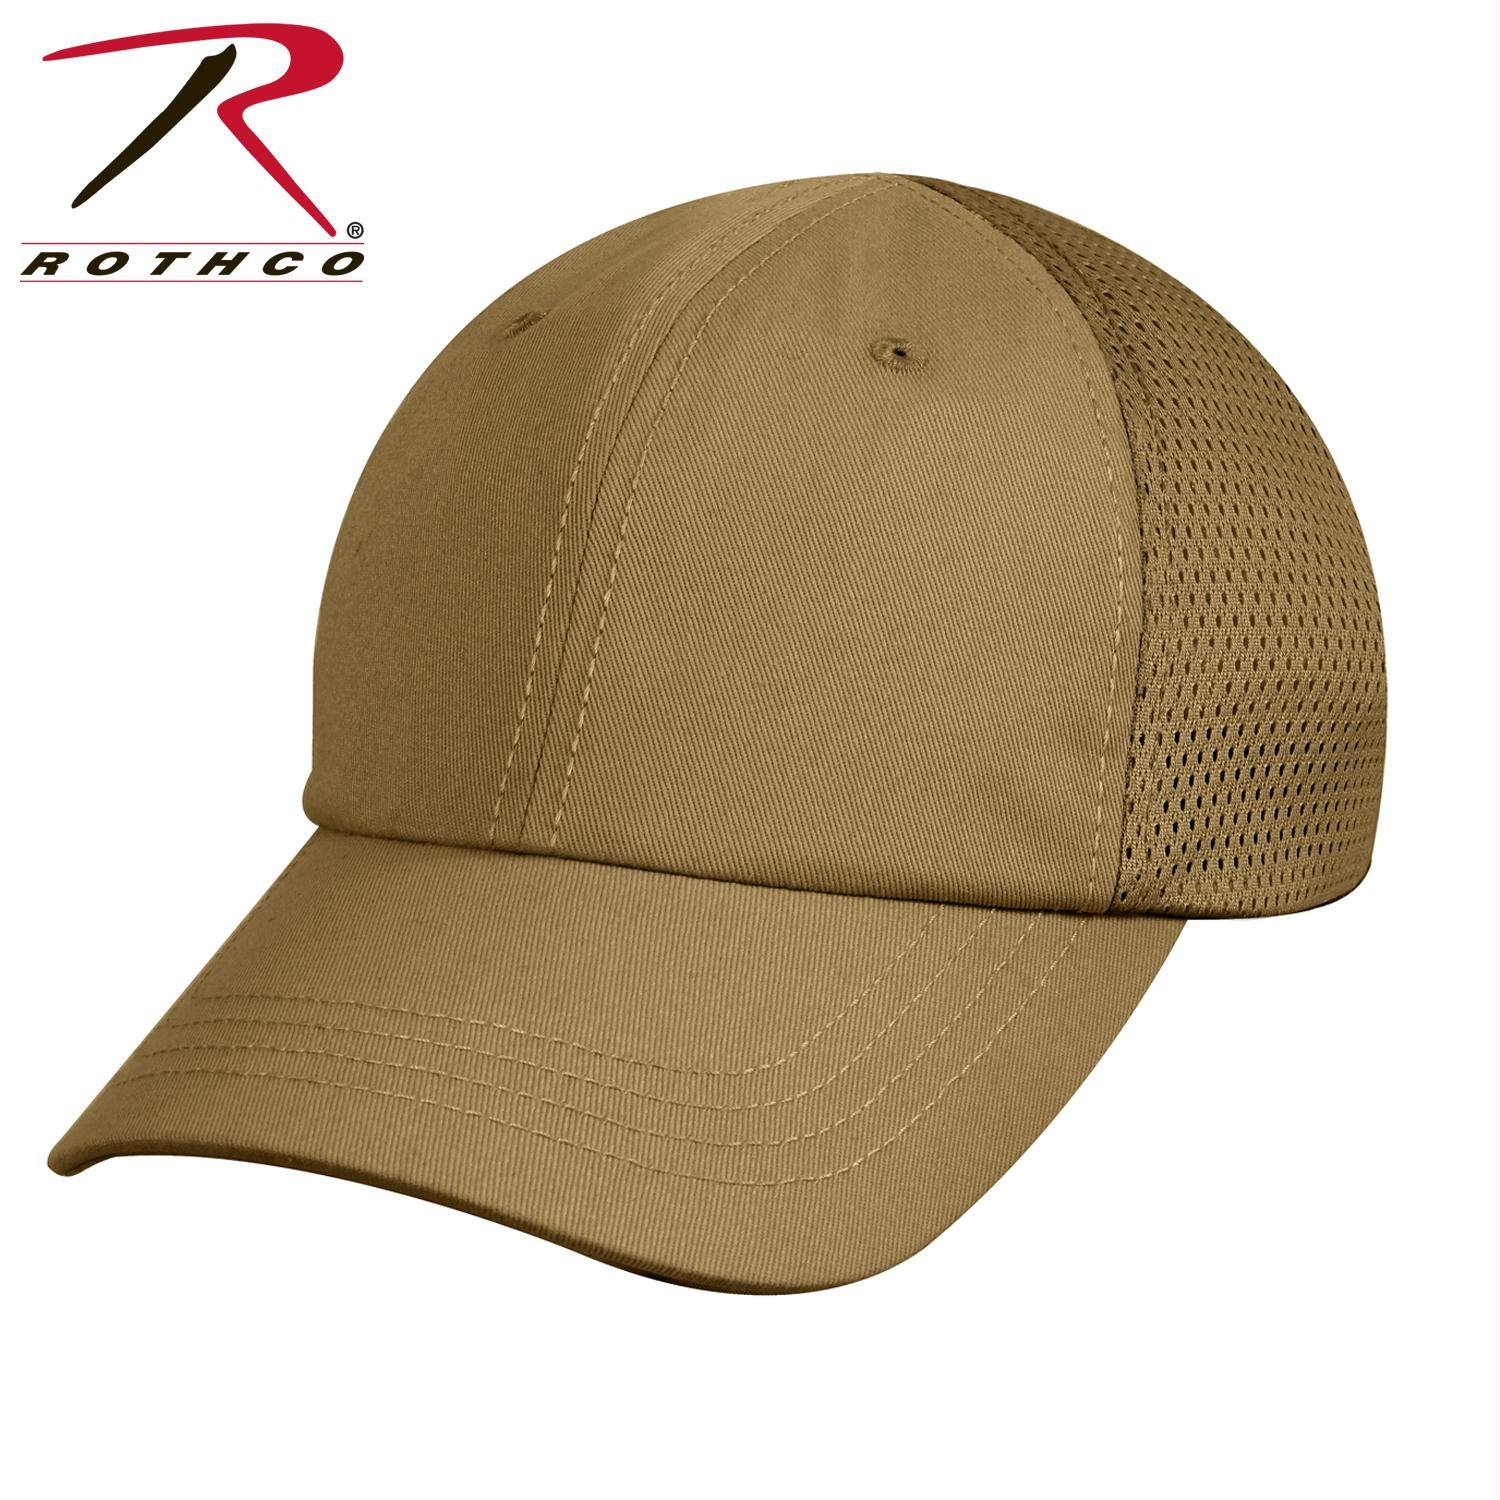 Rothco Mesh Back Tactical Cap - Coyote Brown / One Size